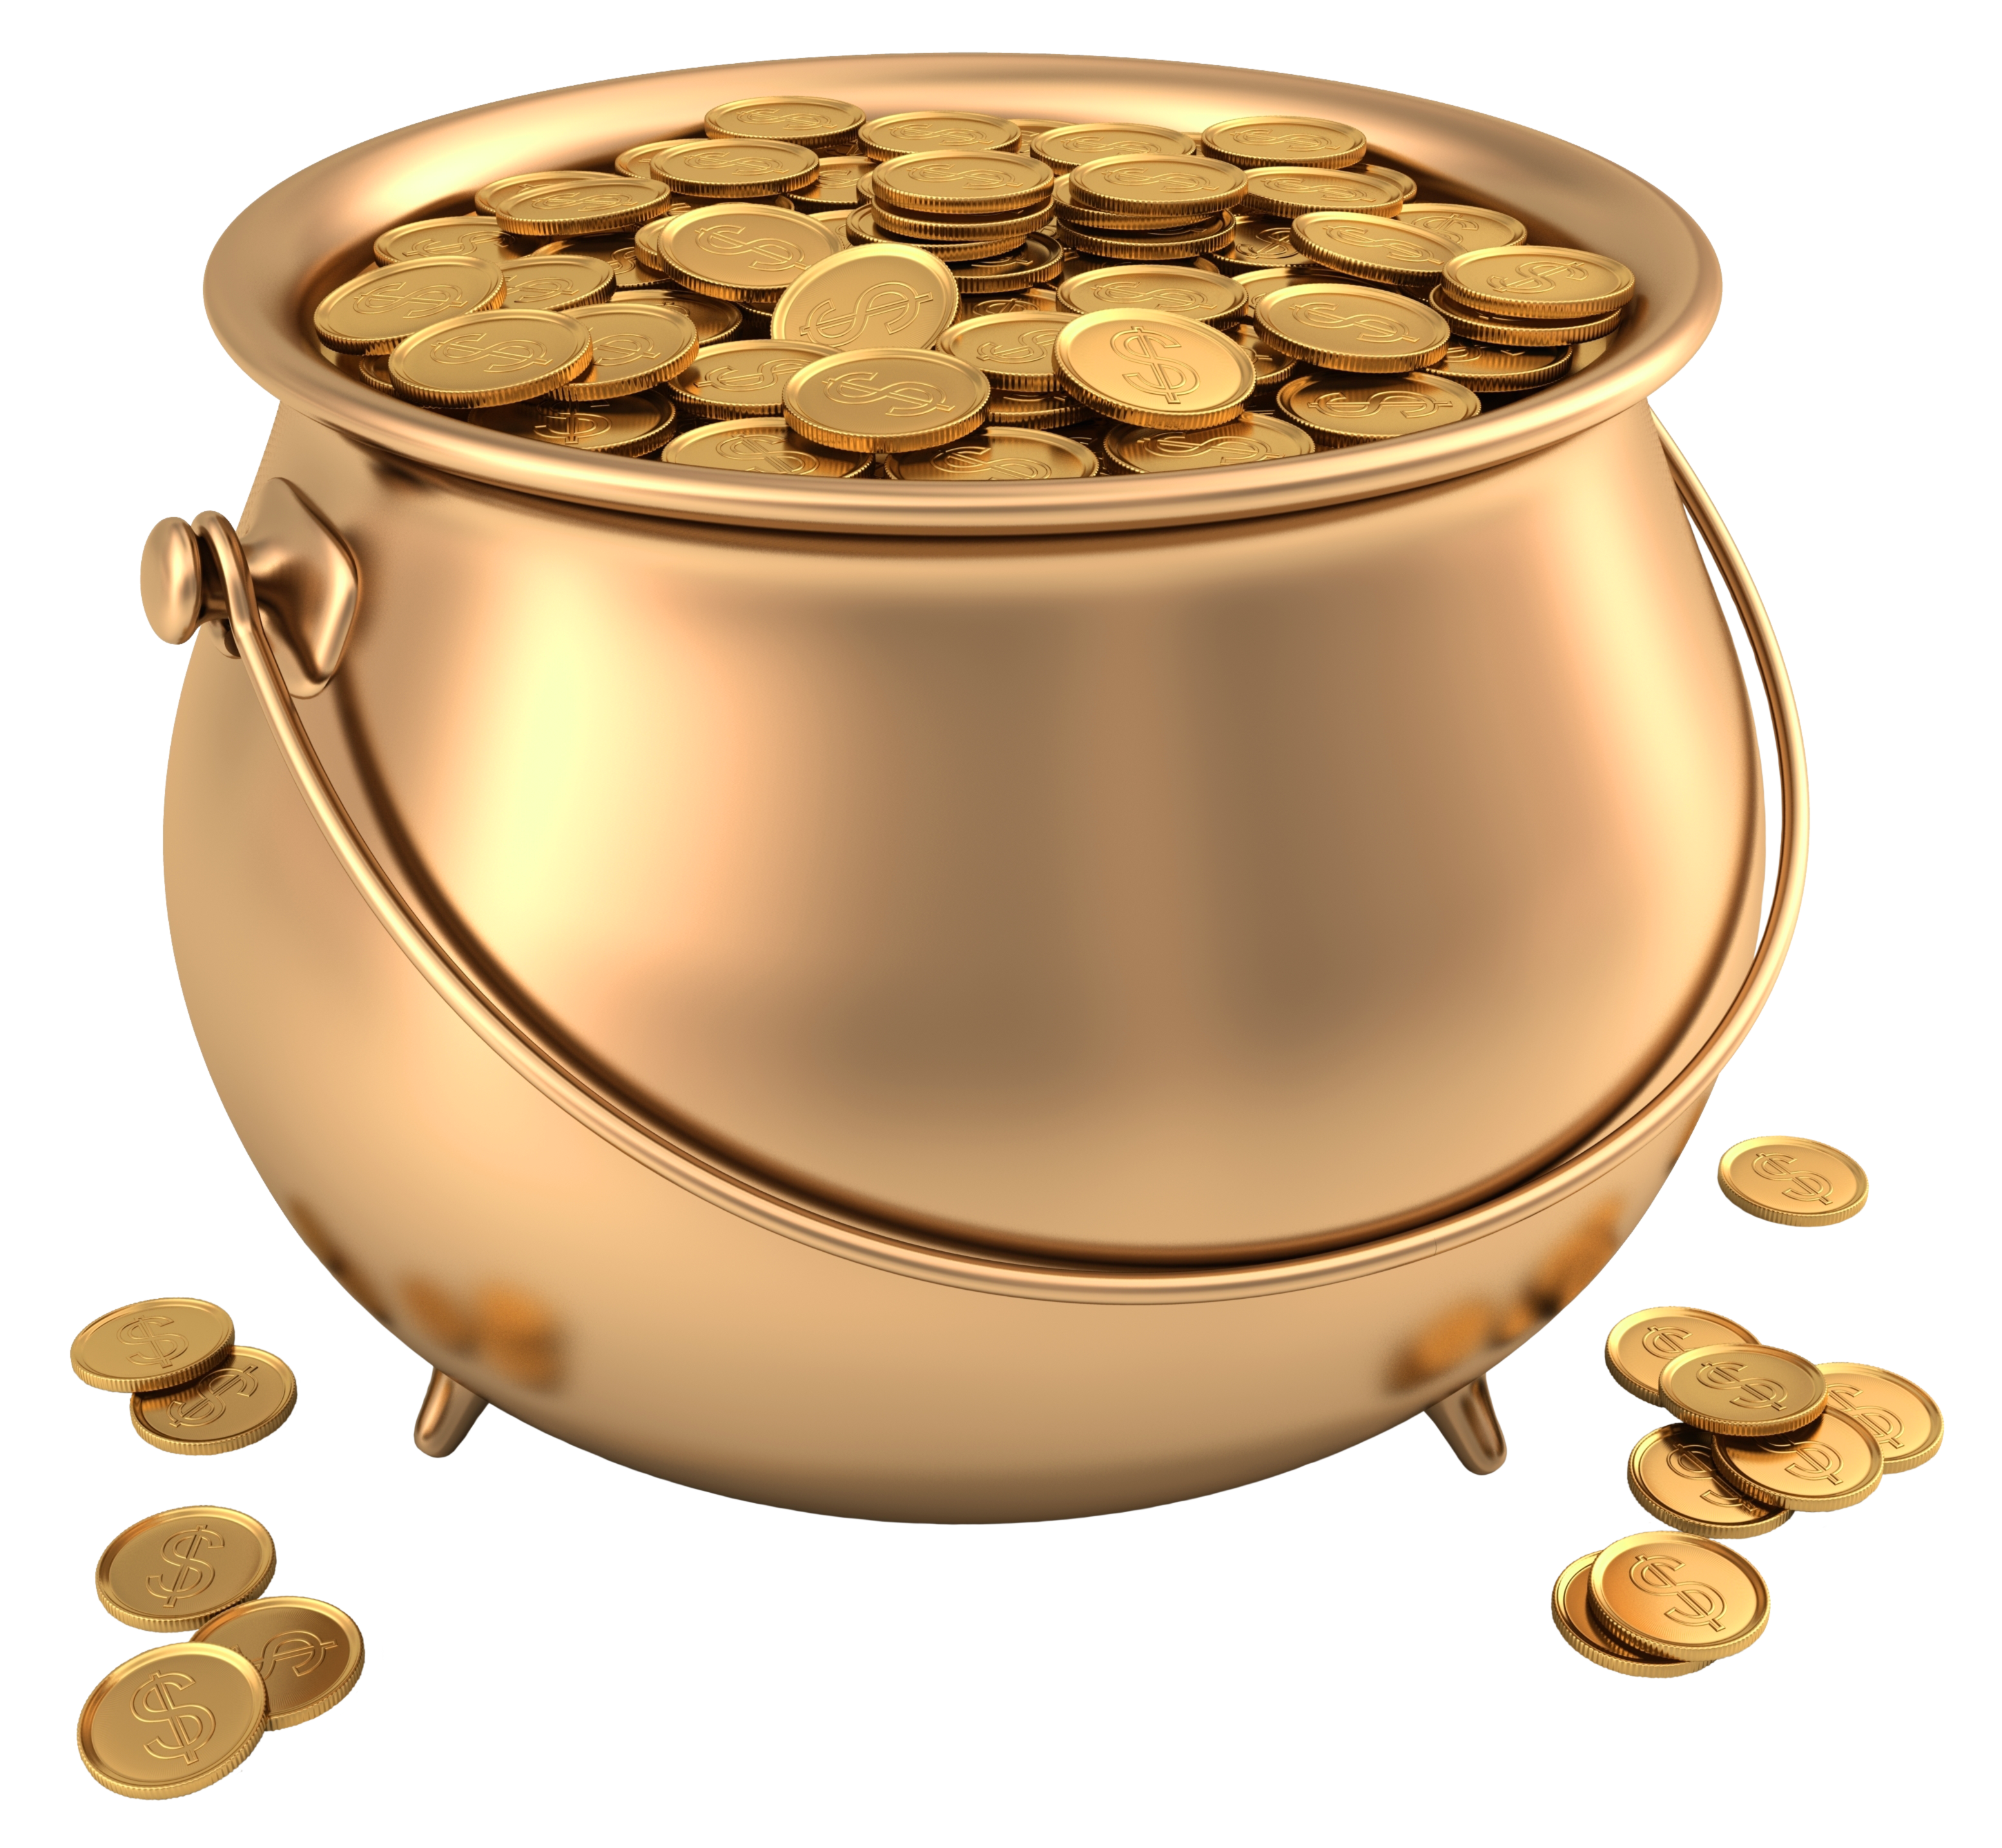 Pot of gold png. Picture clipart gallery yopriceville